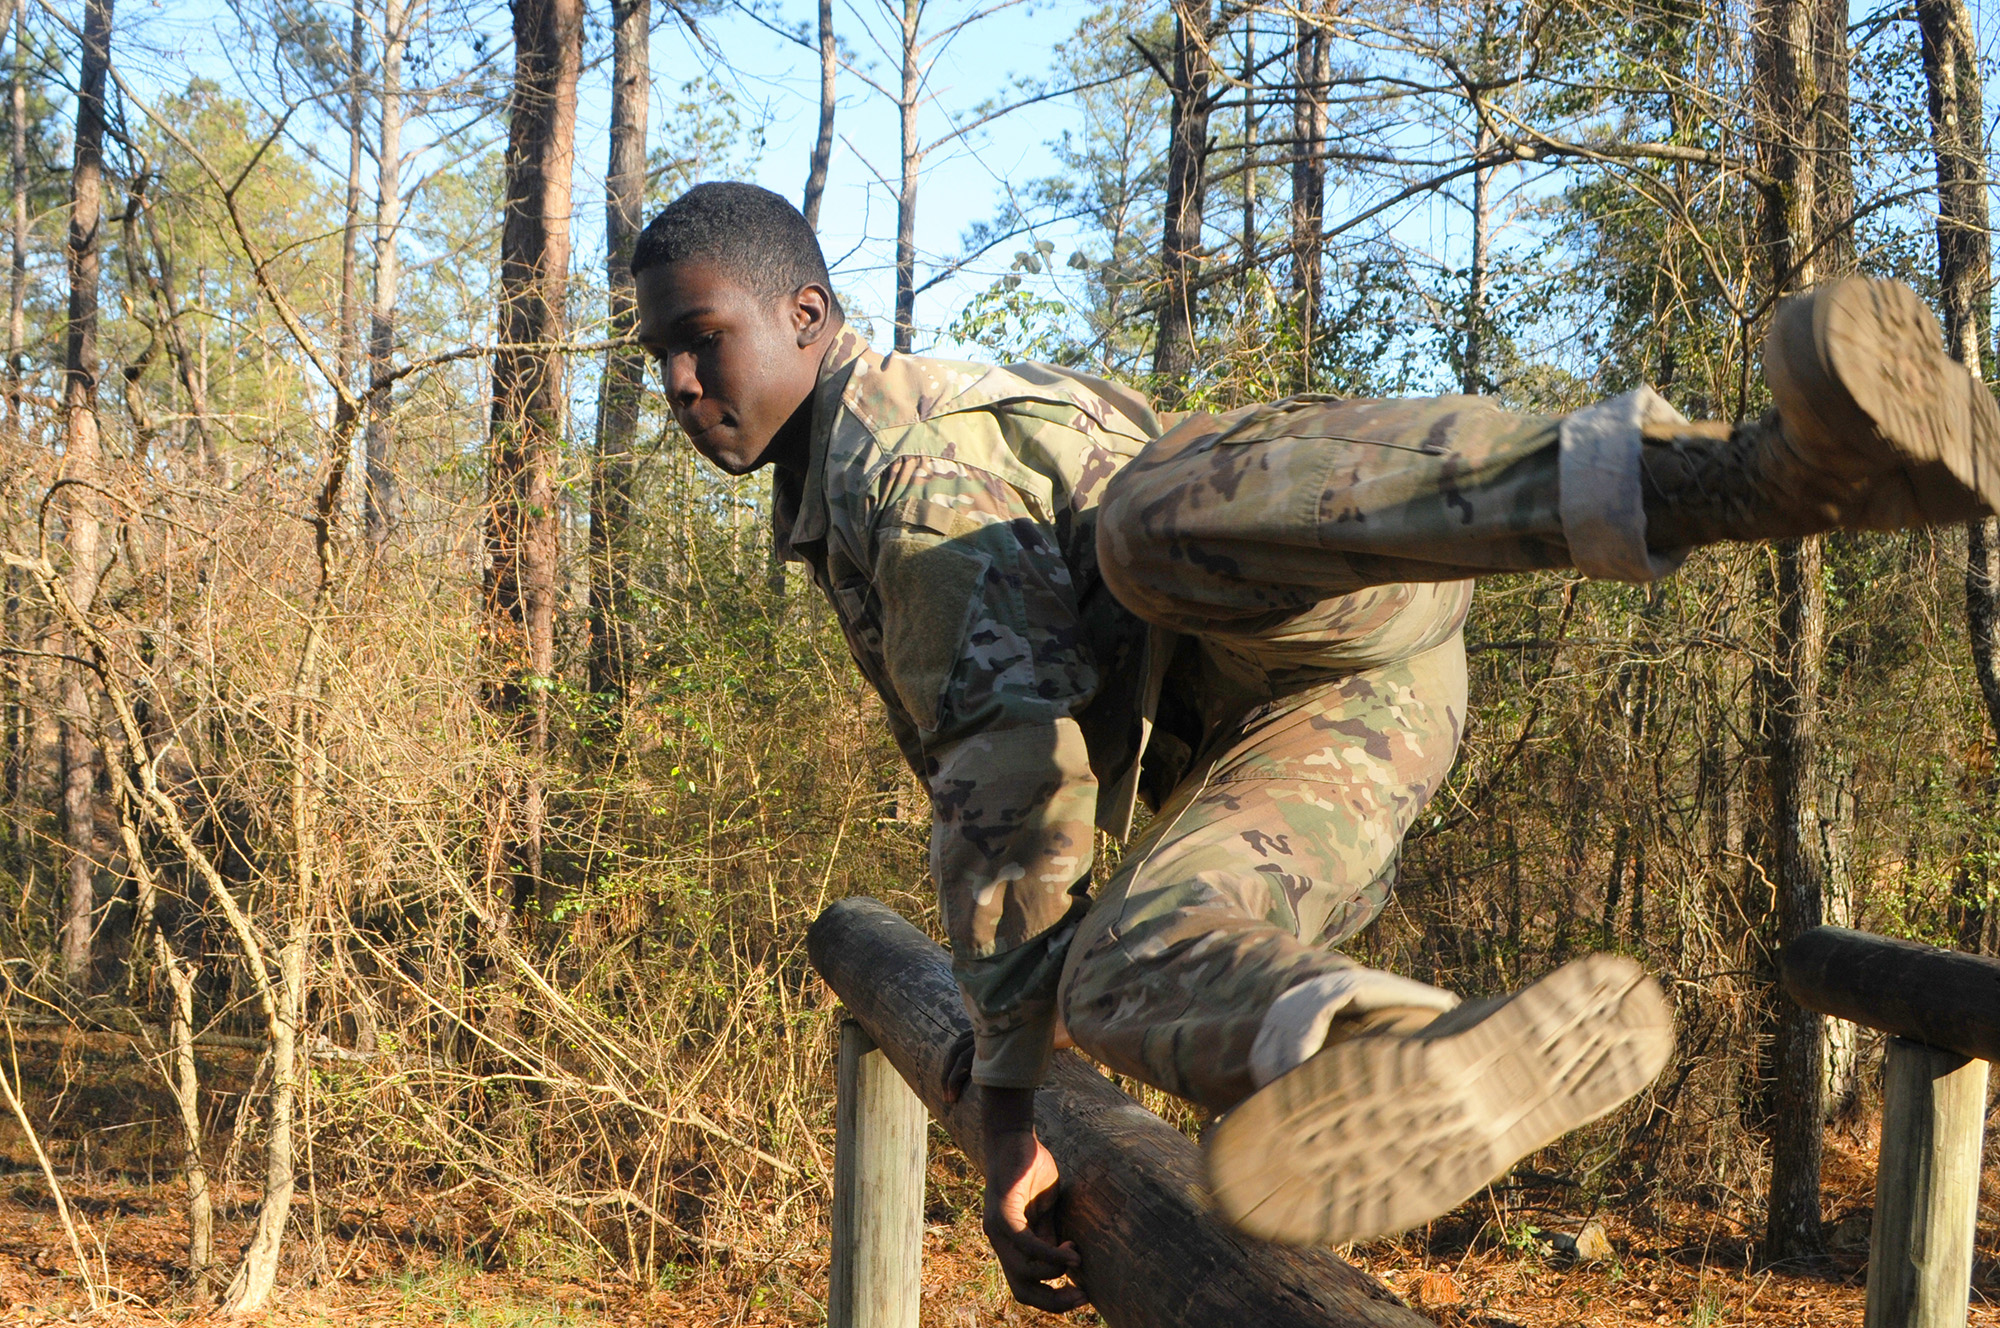 Pfc. Delcoy D. Delius powers through an obstacle course Jan. 23, 2021, as part of the 642nd Regional Support Group Best Warrior Competition at Fort McClellan, Ala. (Sgt. 1st Class Gary A. Witte/Army)